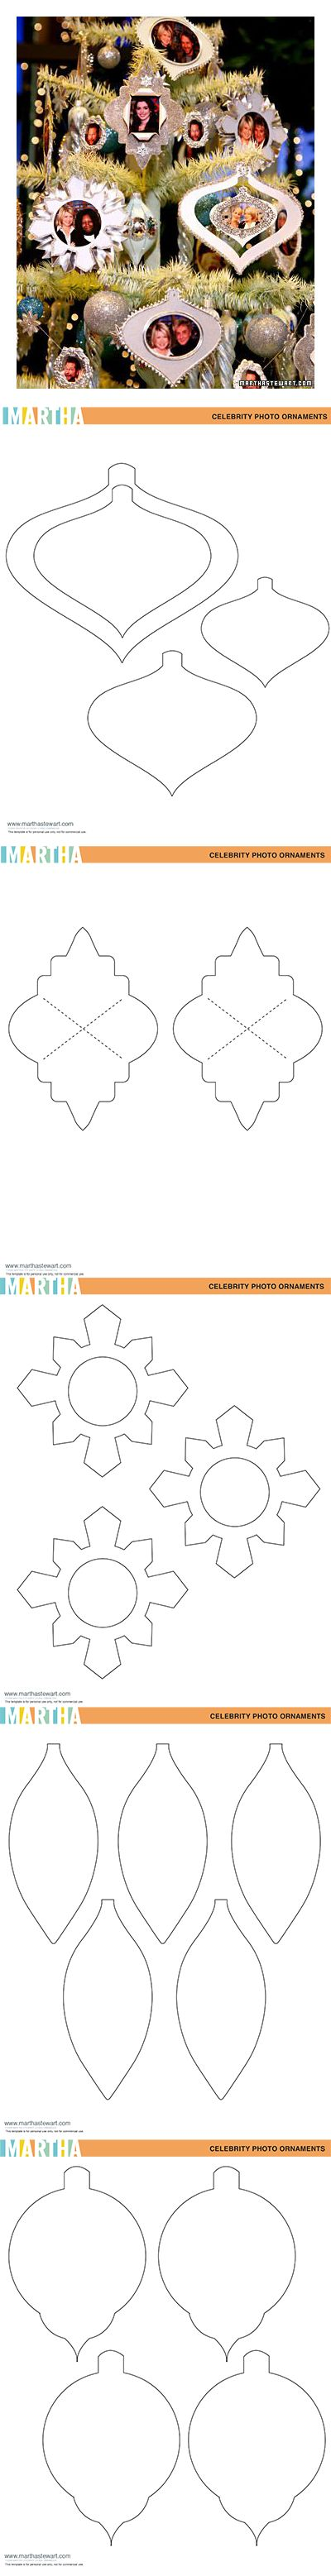 5 free ornament templates - Glittered paper frame ornaments - at Martha Stewart #Christmas #DIY